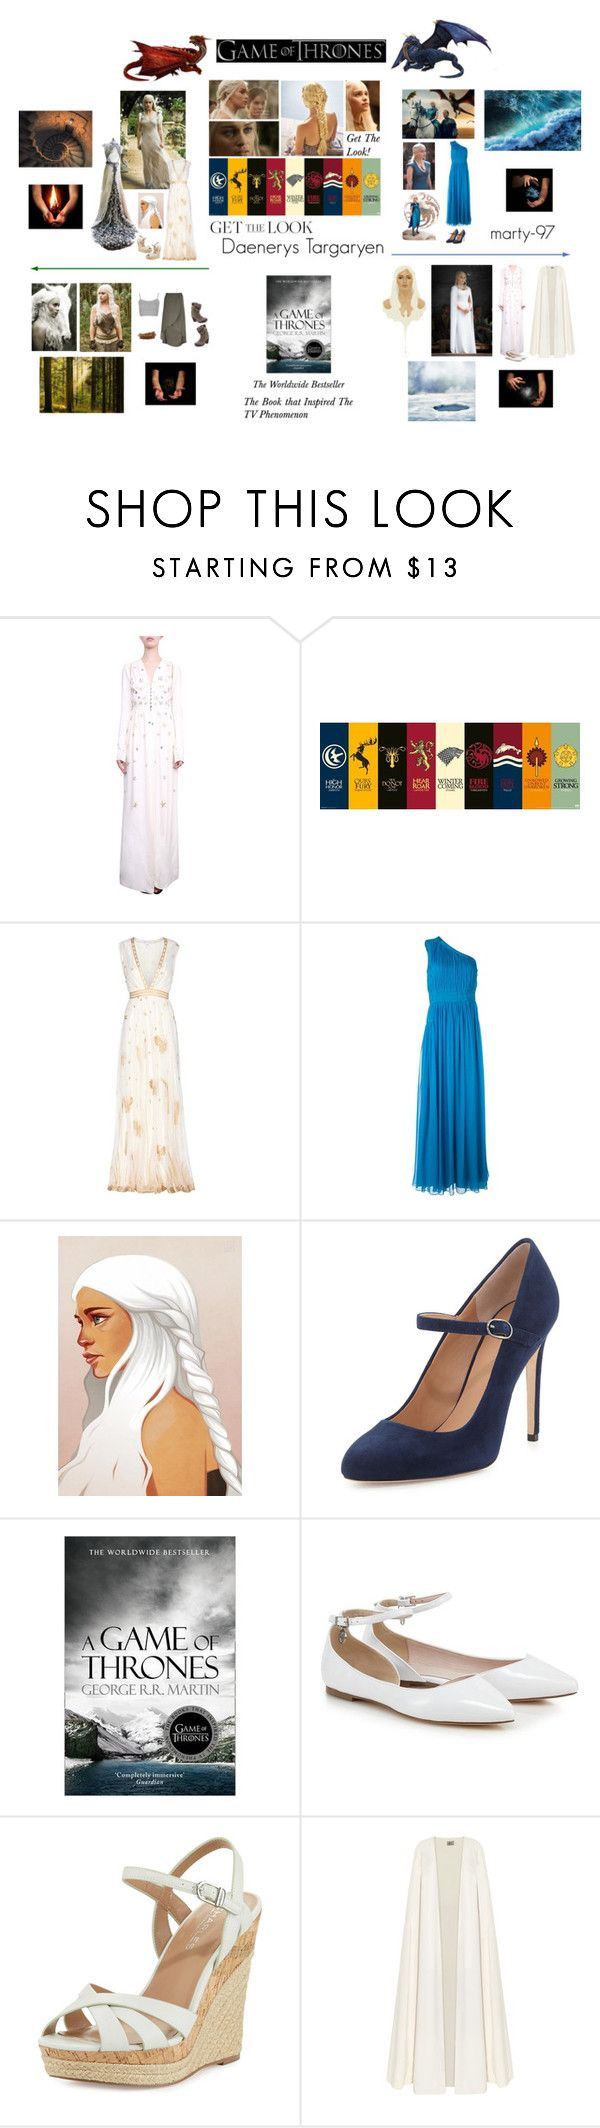 Get The Look! Daenerys Targaryen - Game Of Thrones by marty-97 on Polyvore featuring moda, Diane Von Furstenberg, Attico, La Mania, Charles by Charles David, Halston Heritage and Artista